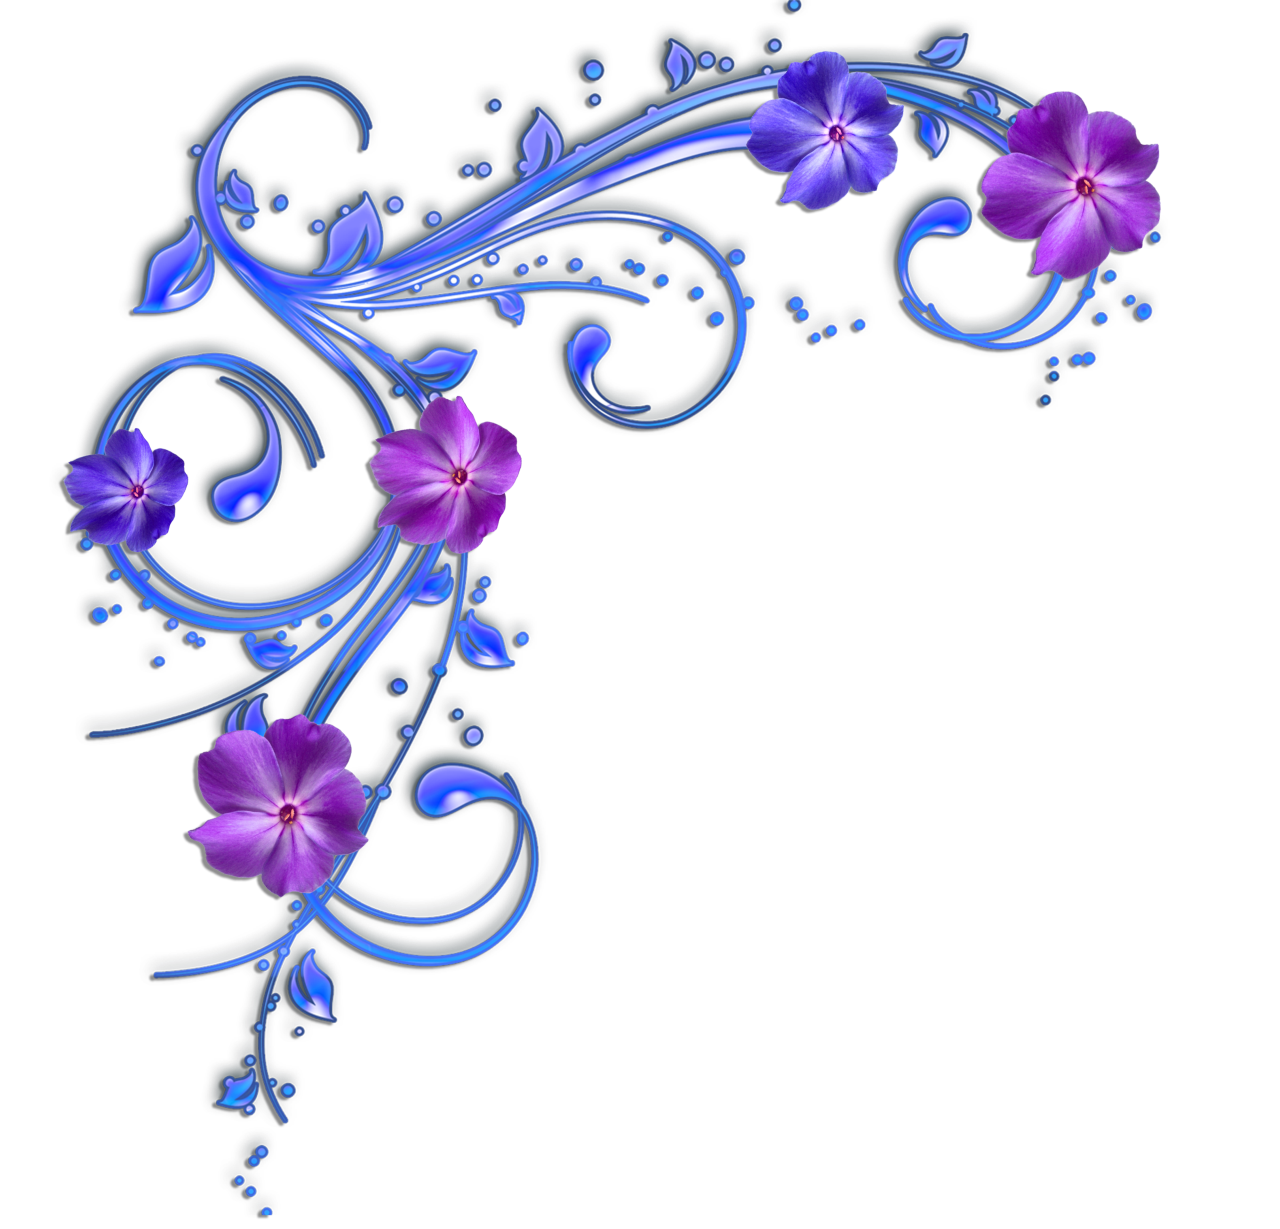 Blue and purple flower clipart picture free Image - Purple-and-blue-flowers-clipart-floral--28578.png | Animal ... picture free